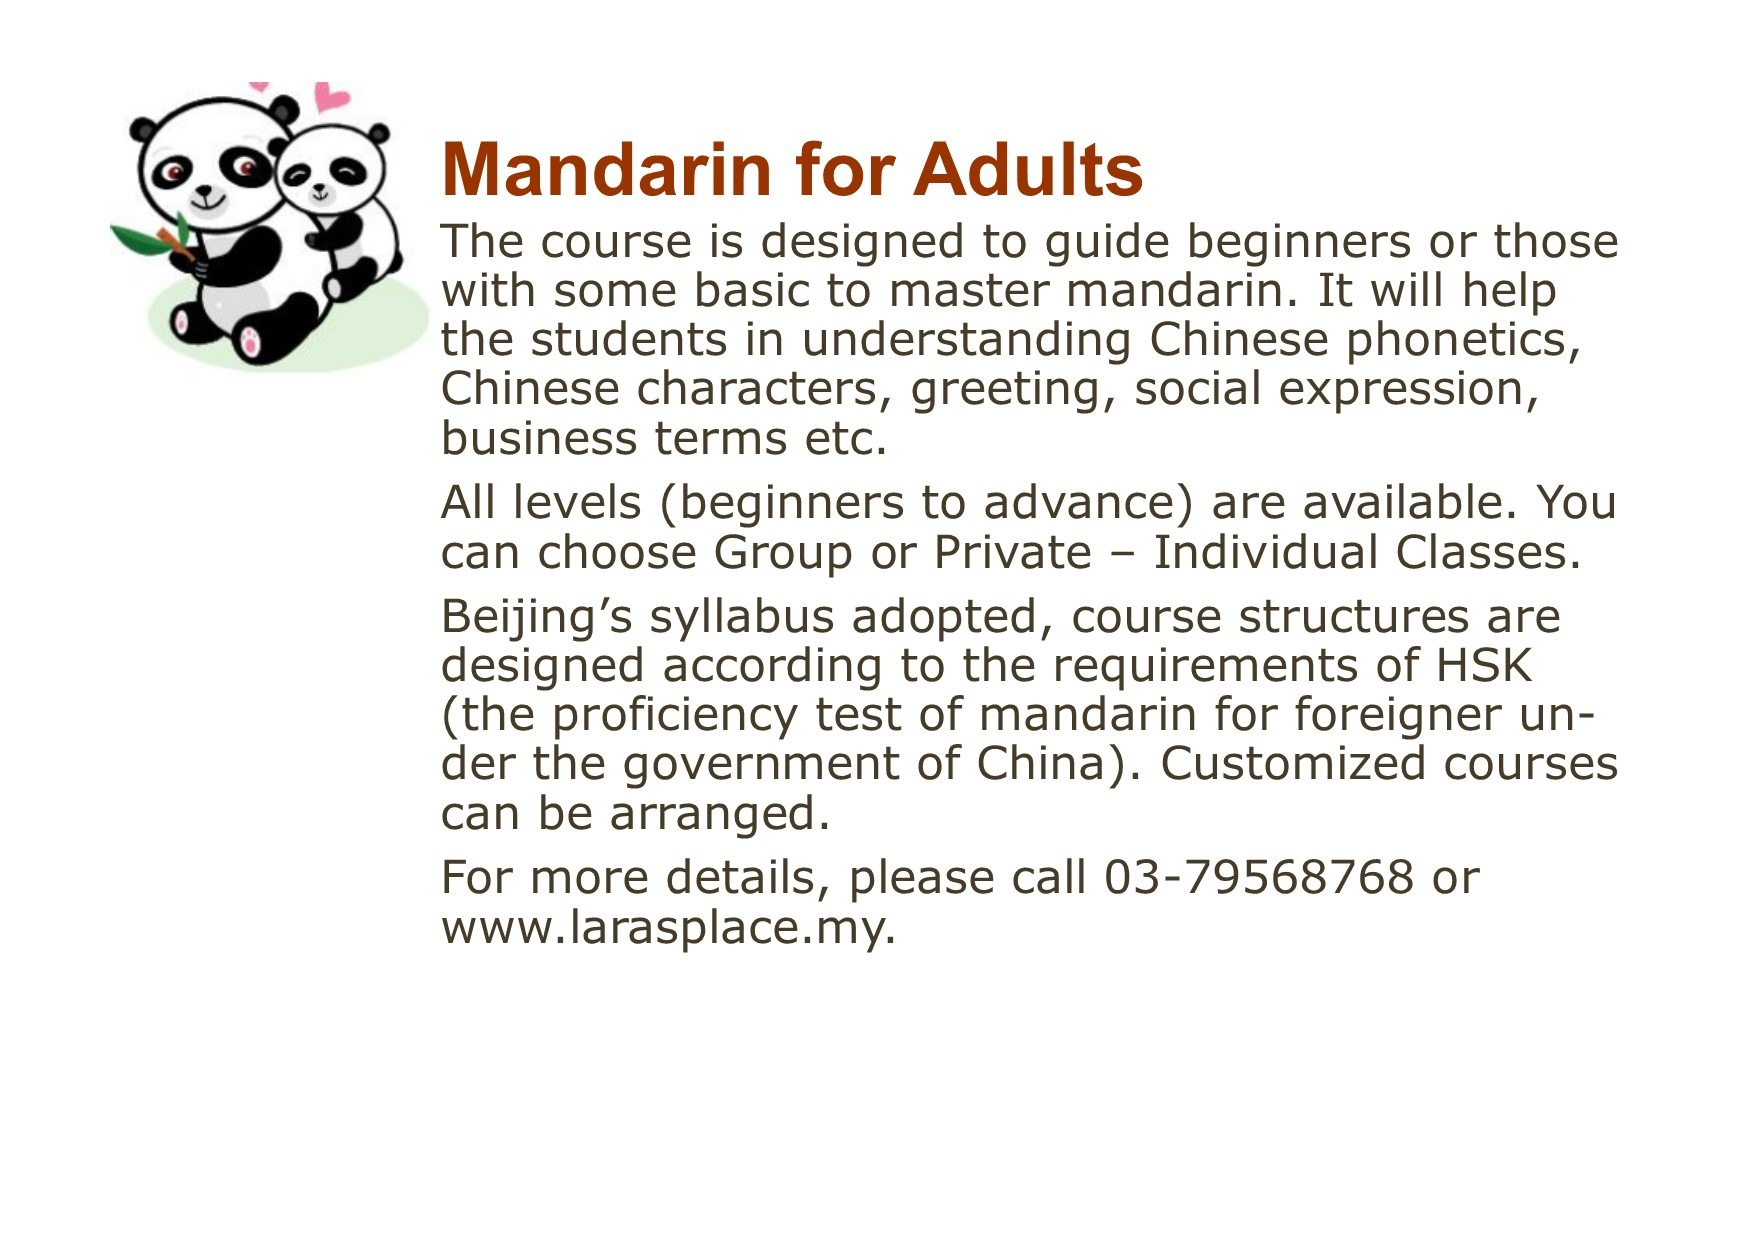 mandarin adults flyers